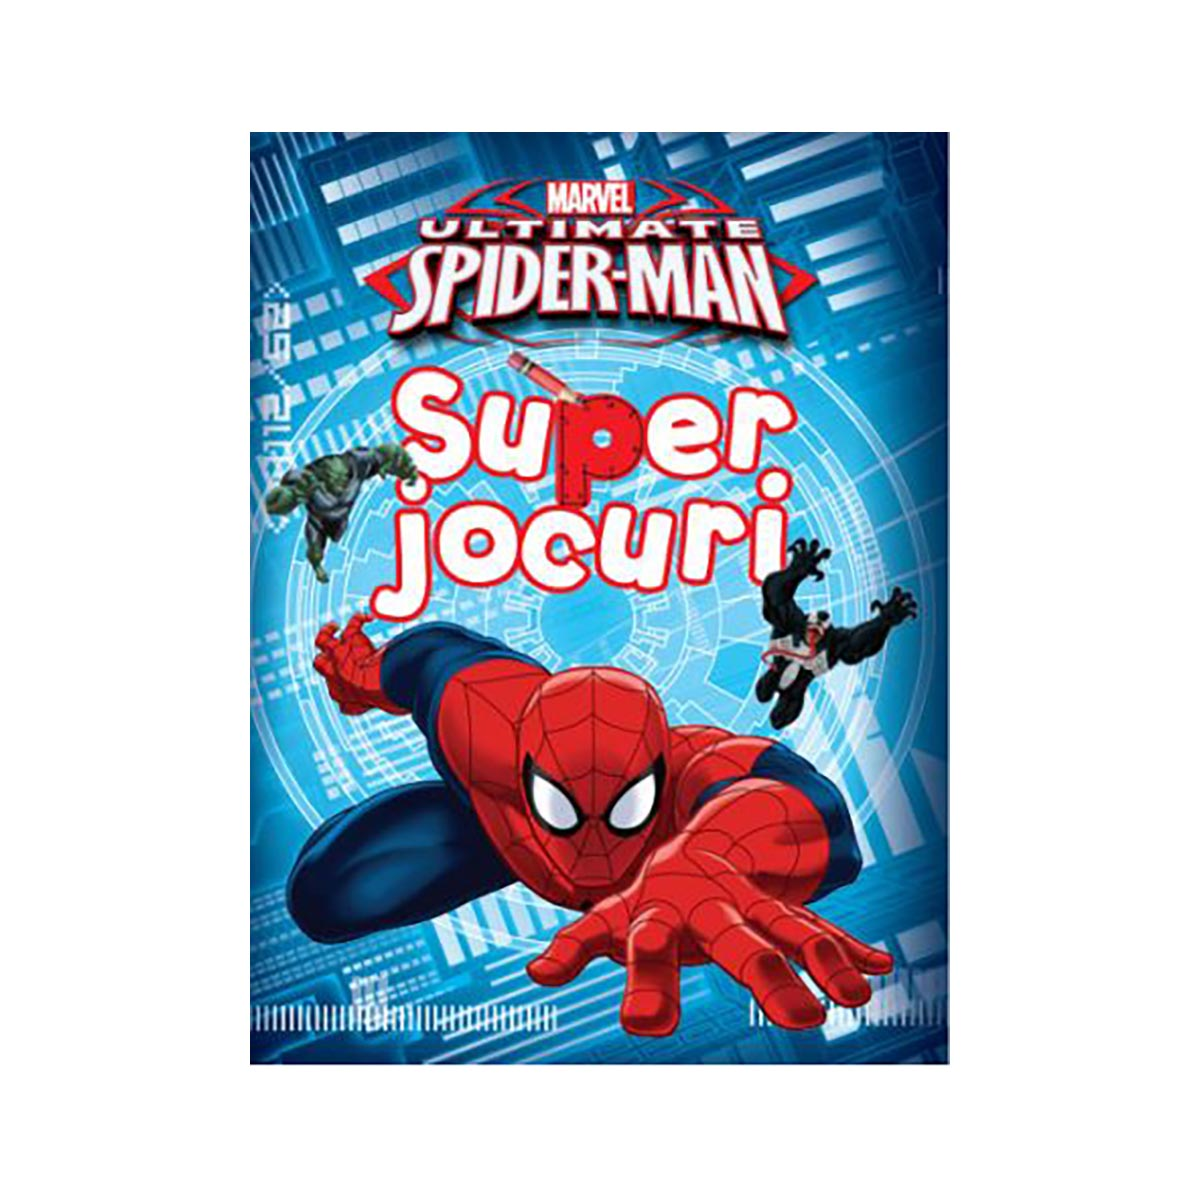 Carte cu activitati Super Jocuri, Ultimate Spiderman, Marvel